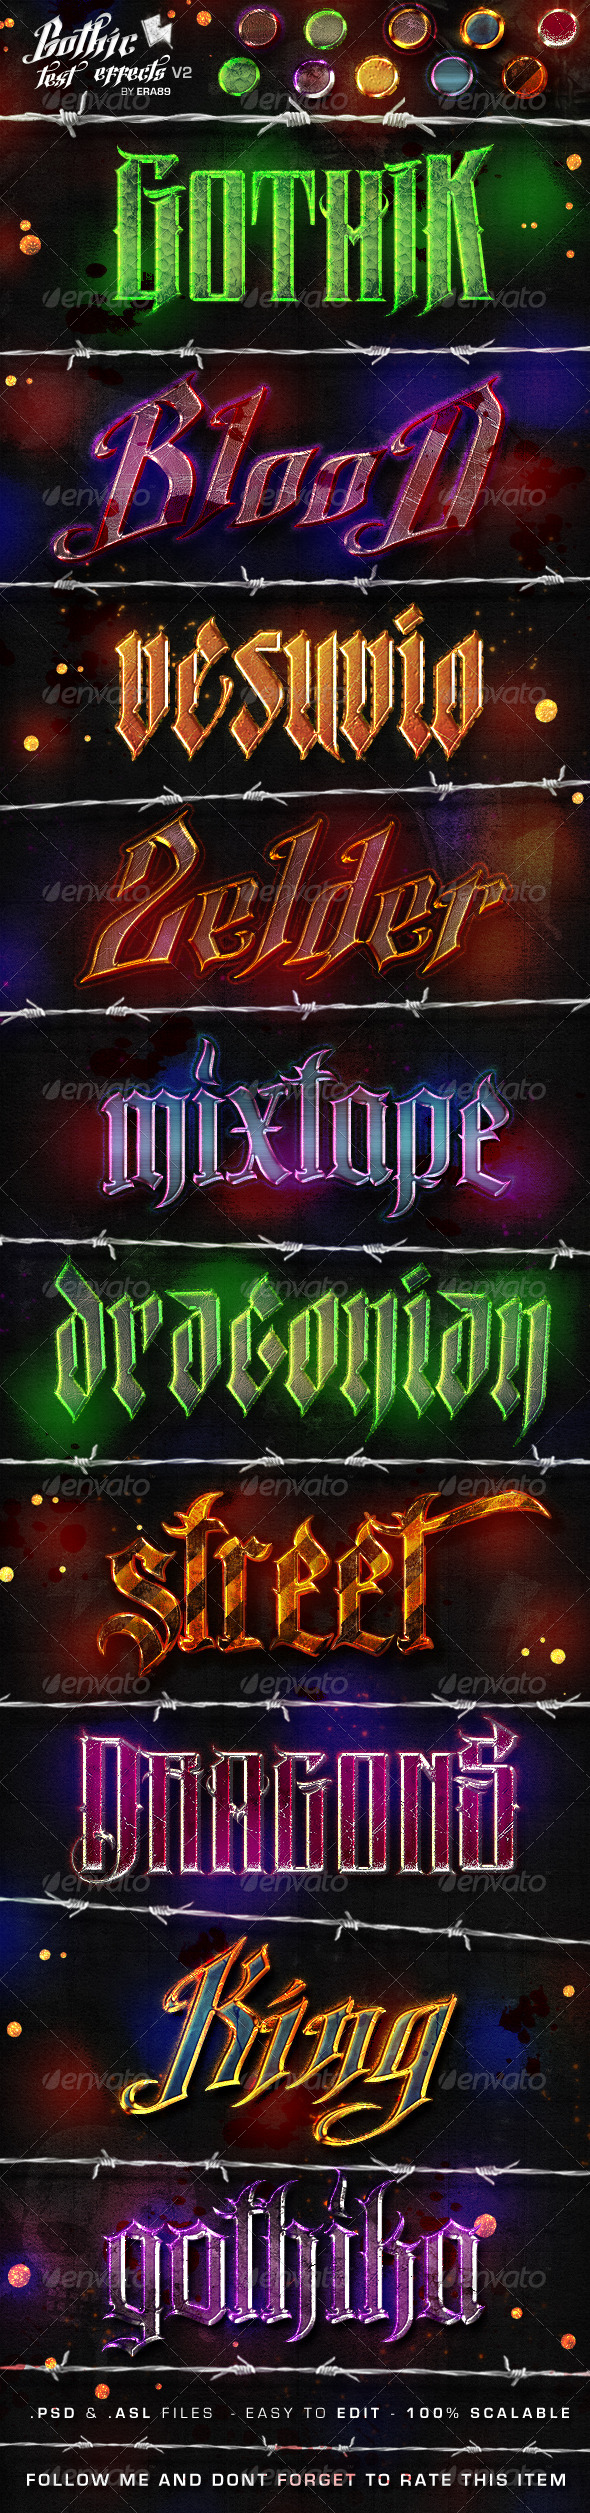 Gothic Text Effects v2 - Photoshop Styles - Text Effects Actions